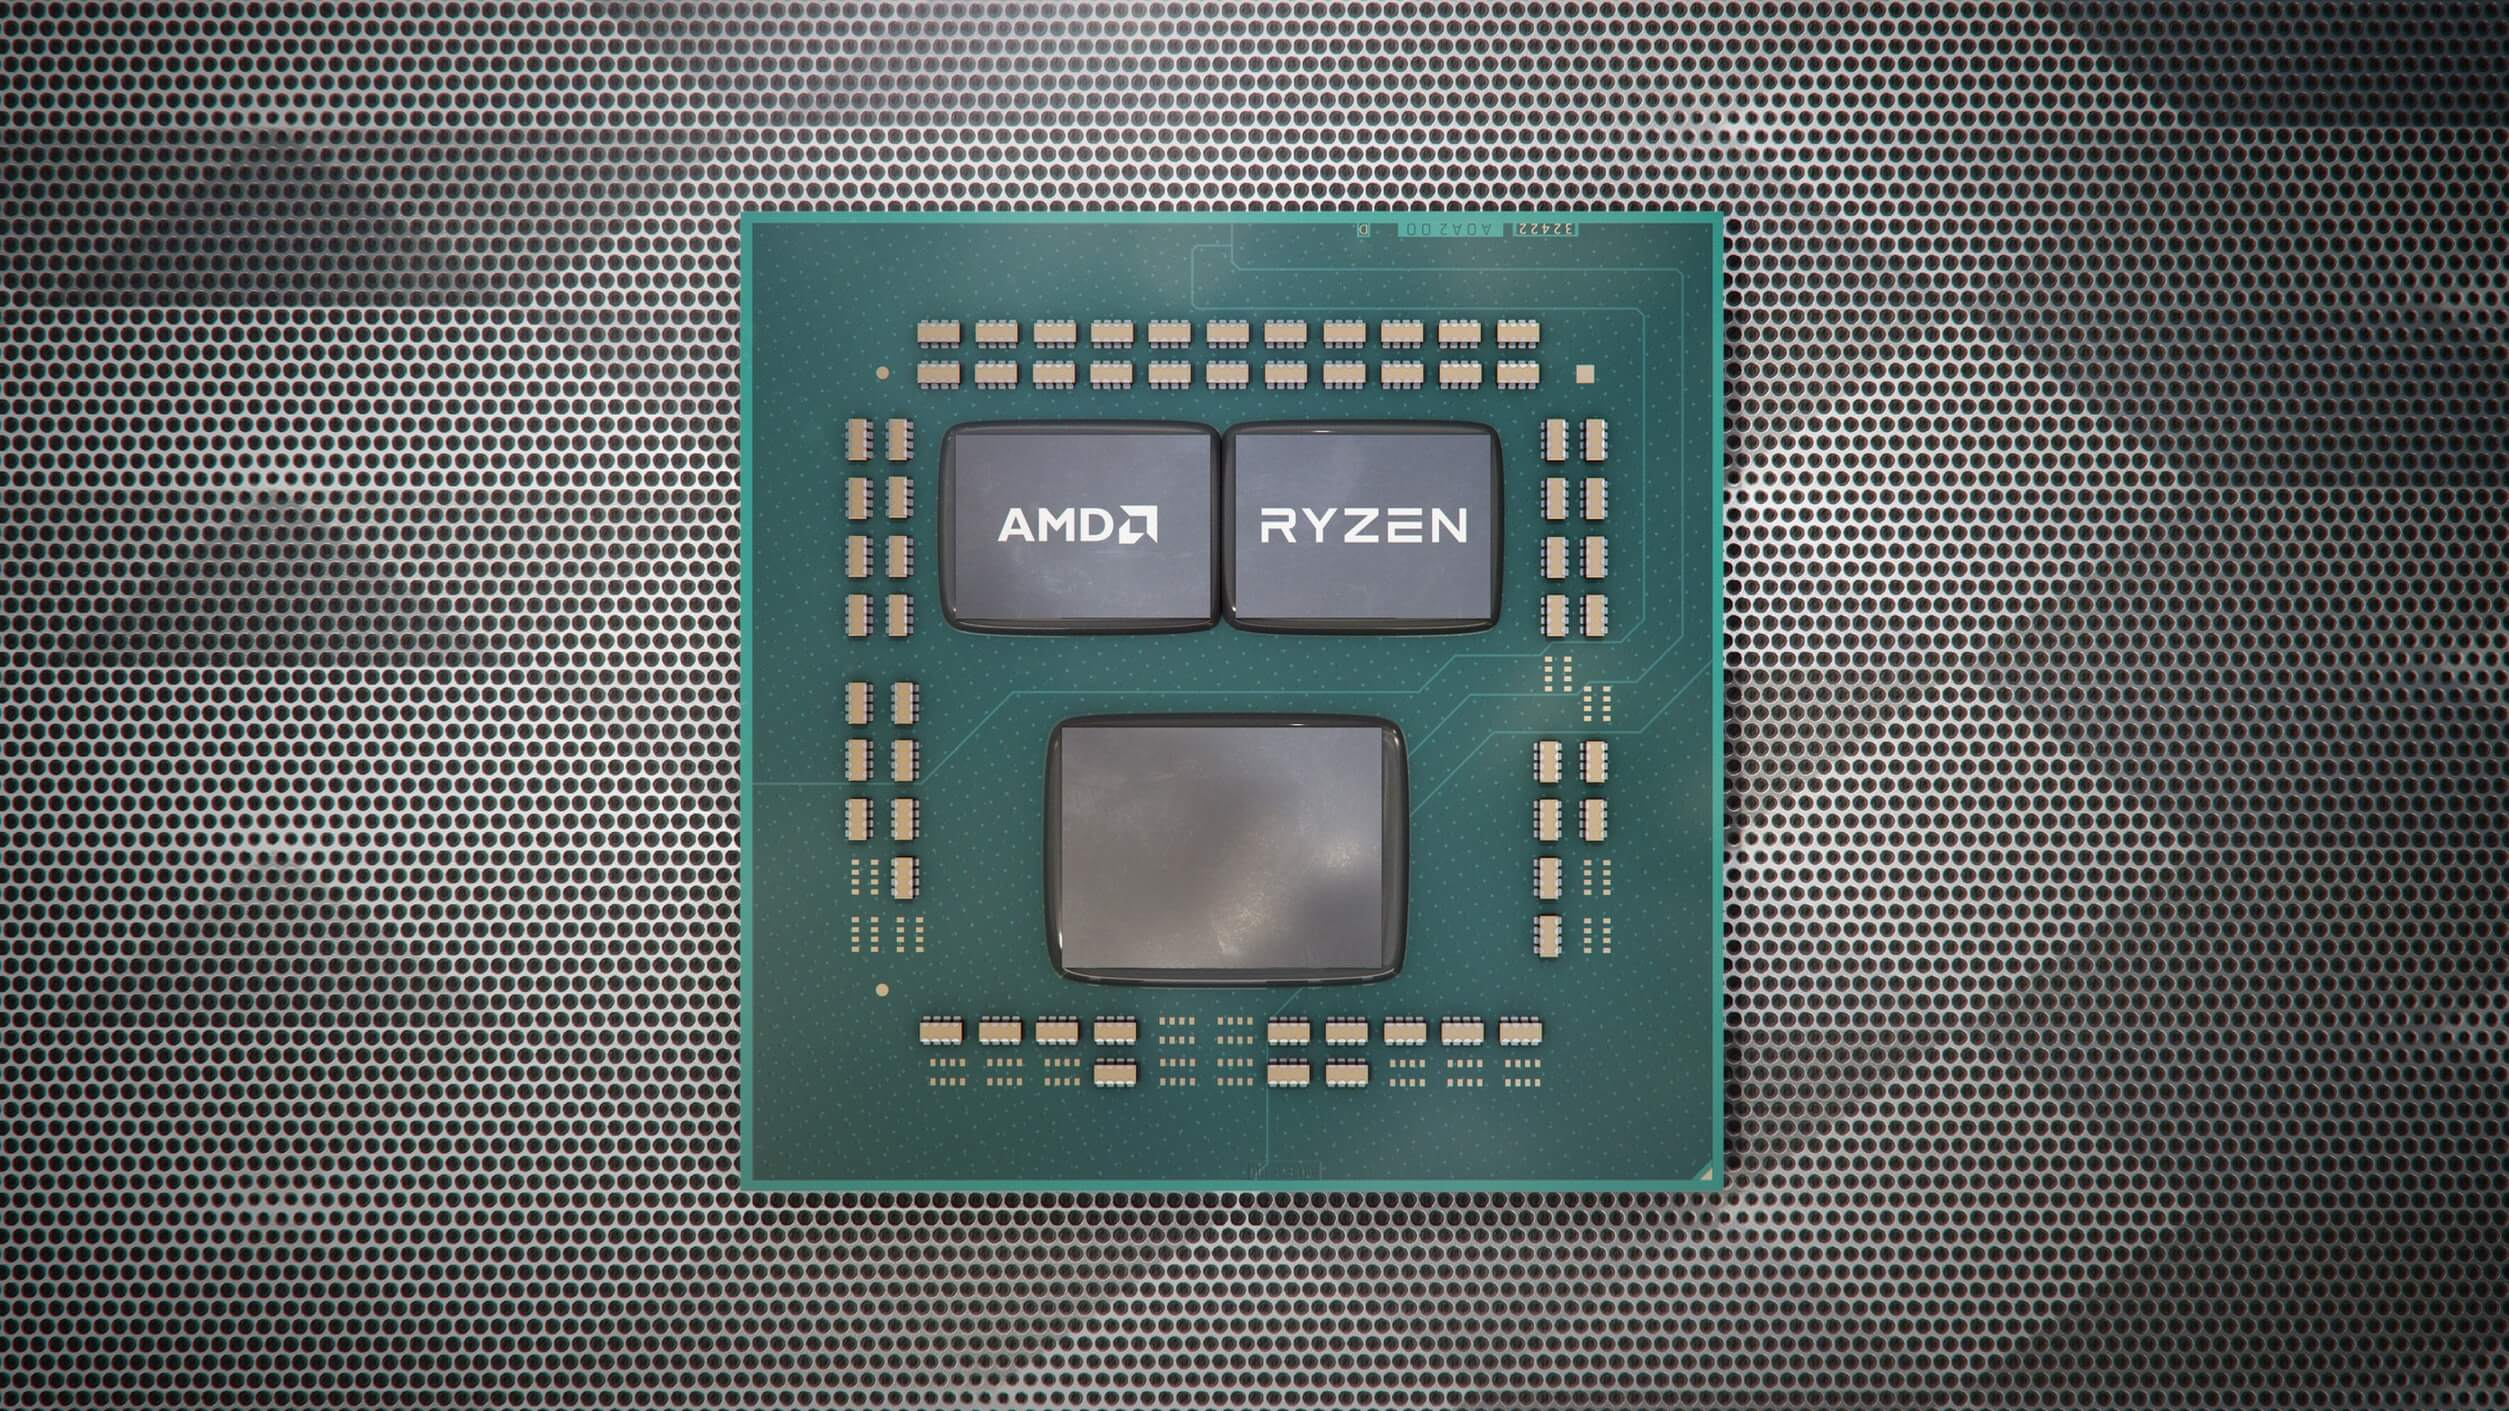 AMD Ryzen 5 3600 benchmarked early, shows performance barely slower than Intel i9-9900K